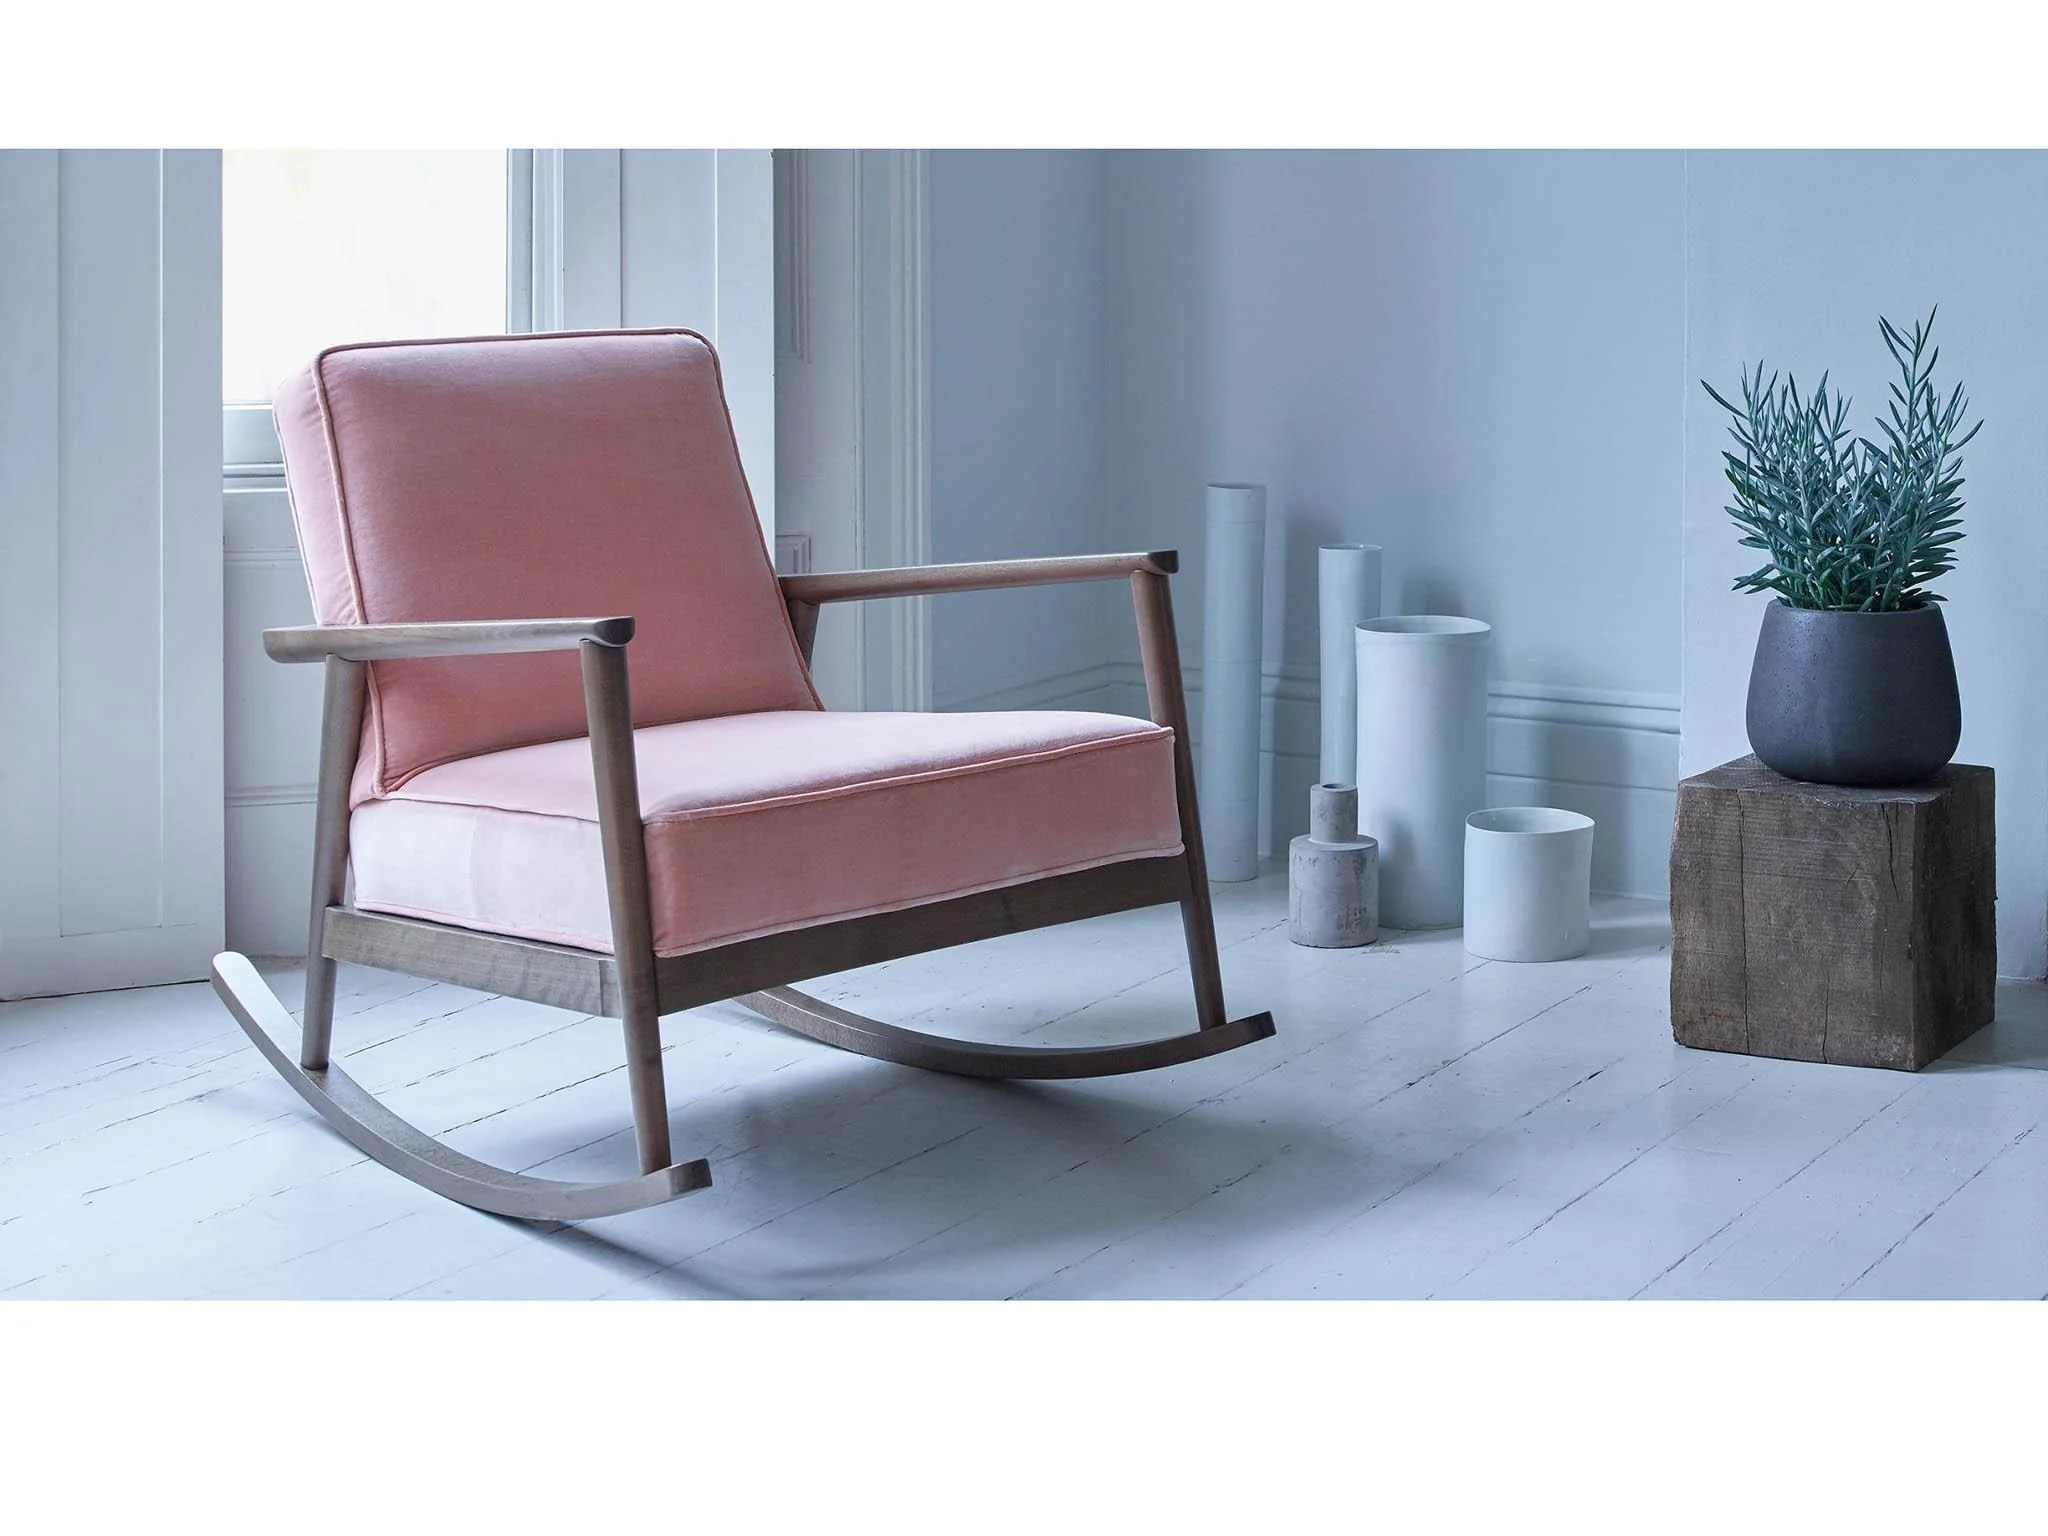 Mexican Rocking Chair 10 Best Rocking Chairs The Independent